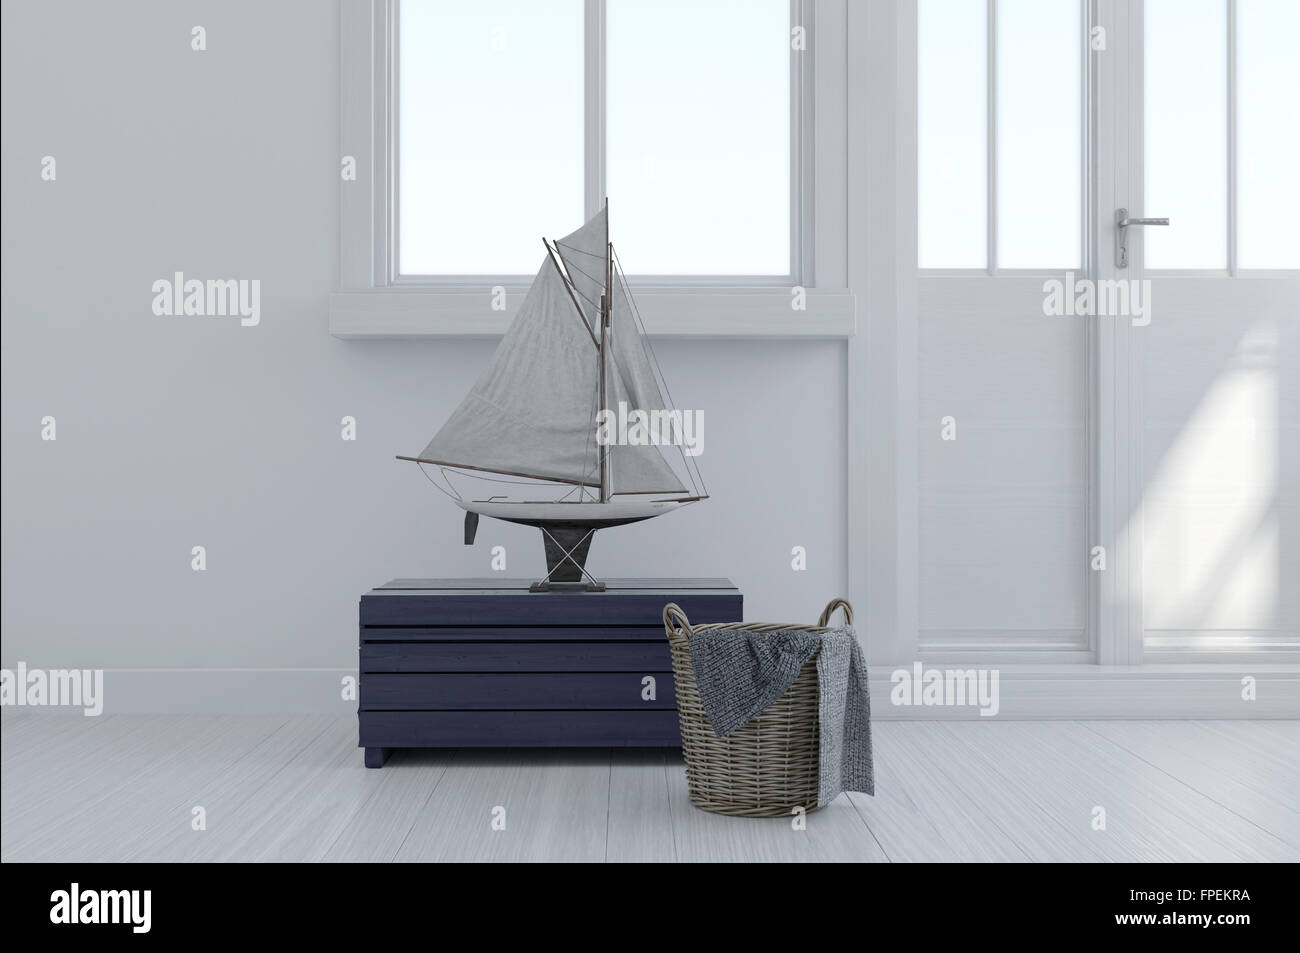 Nautical Themed Interior Decor In A Modern White Room With A